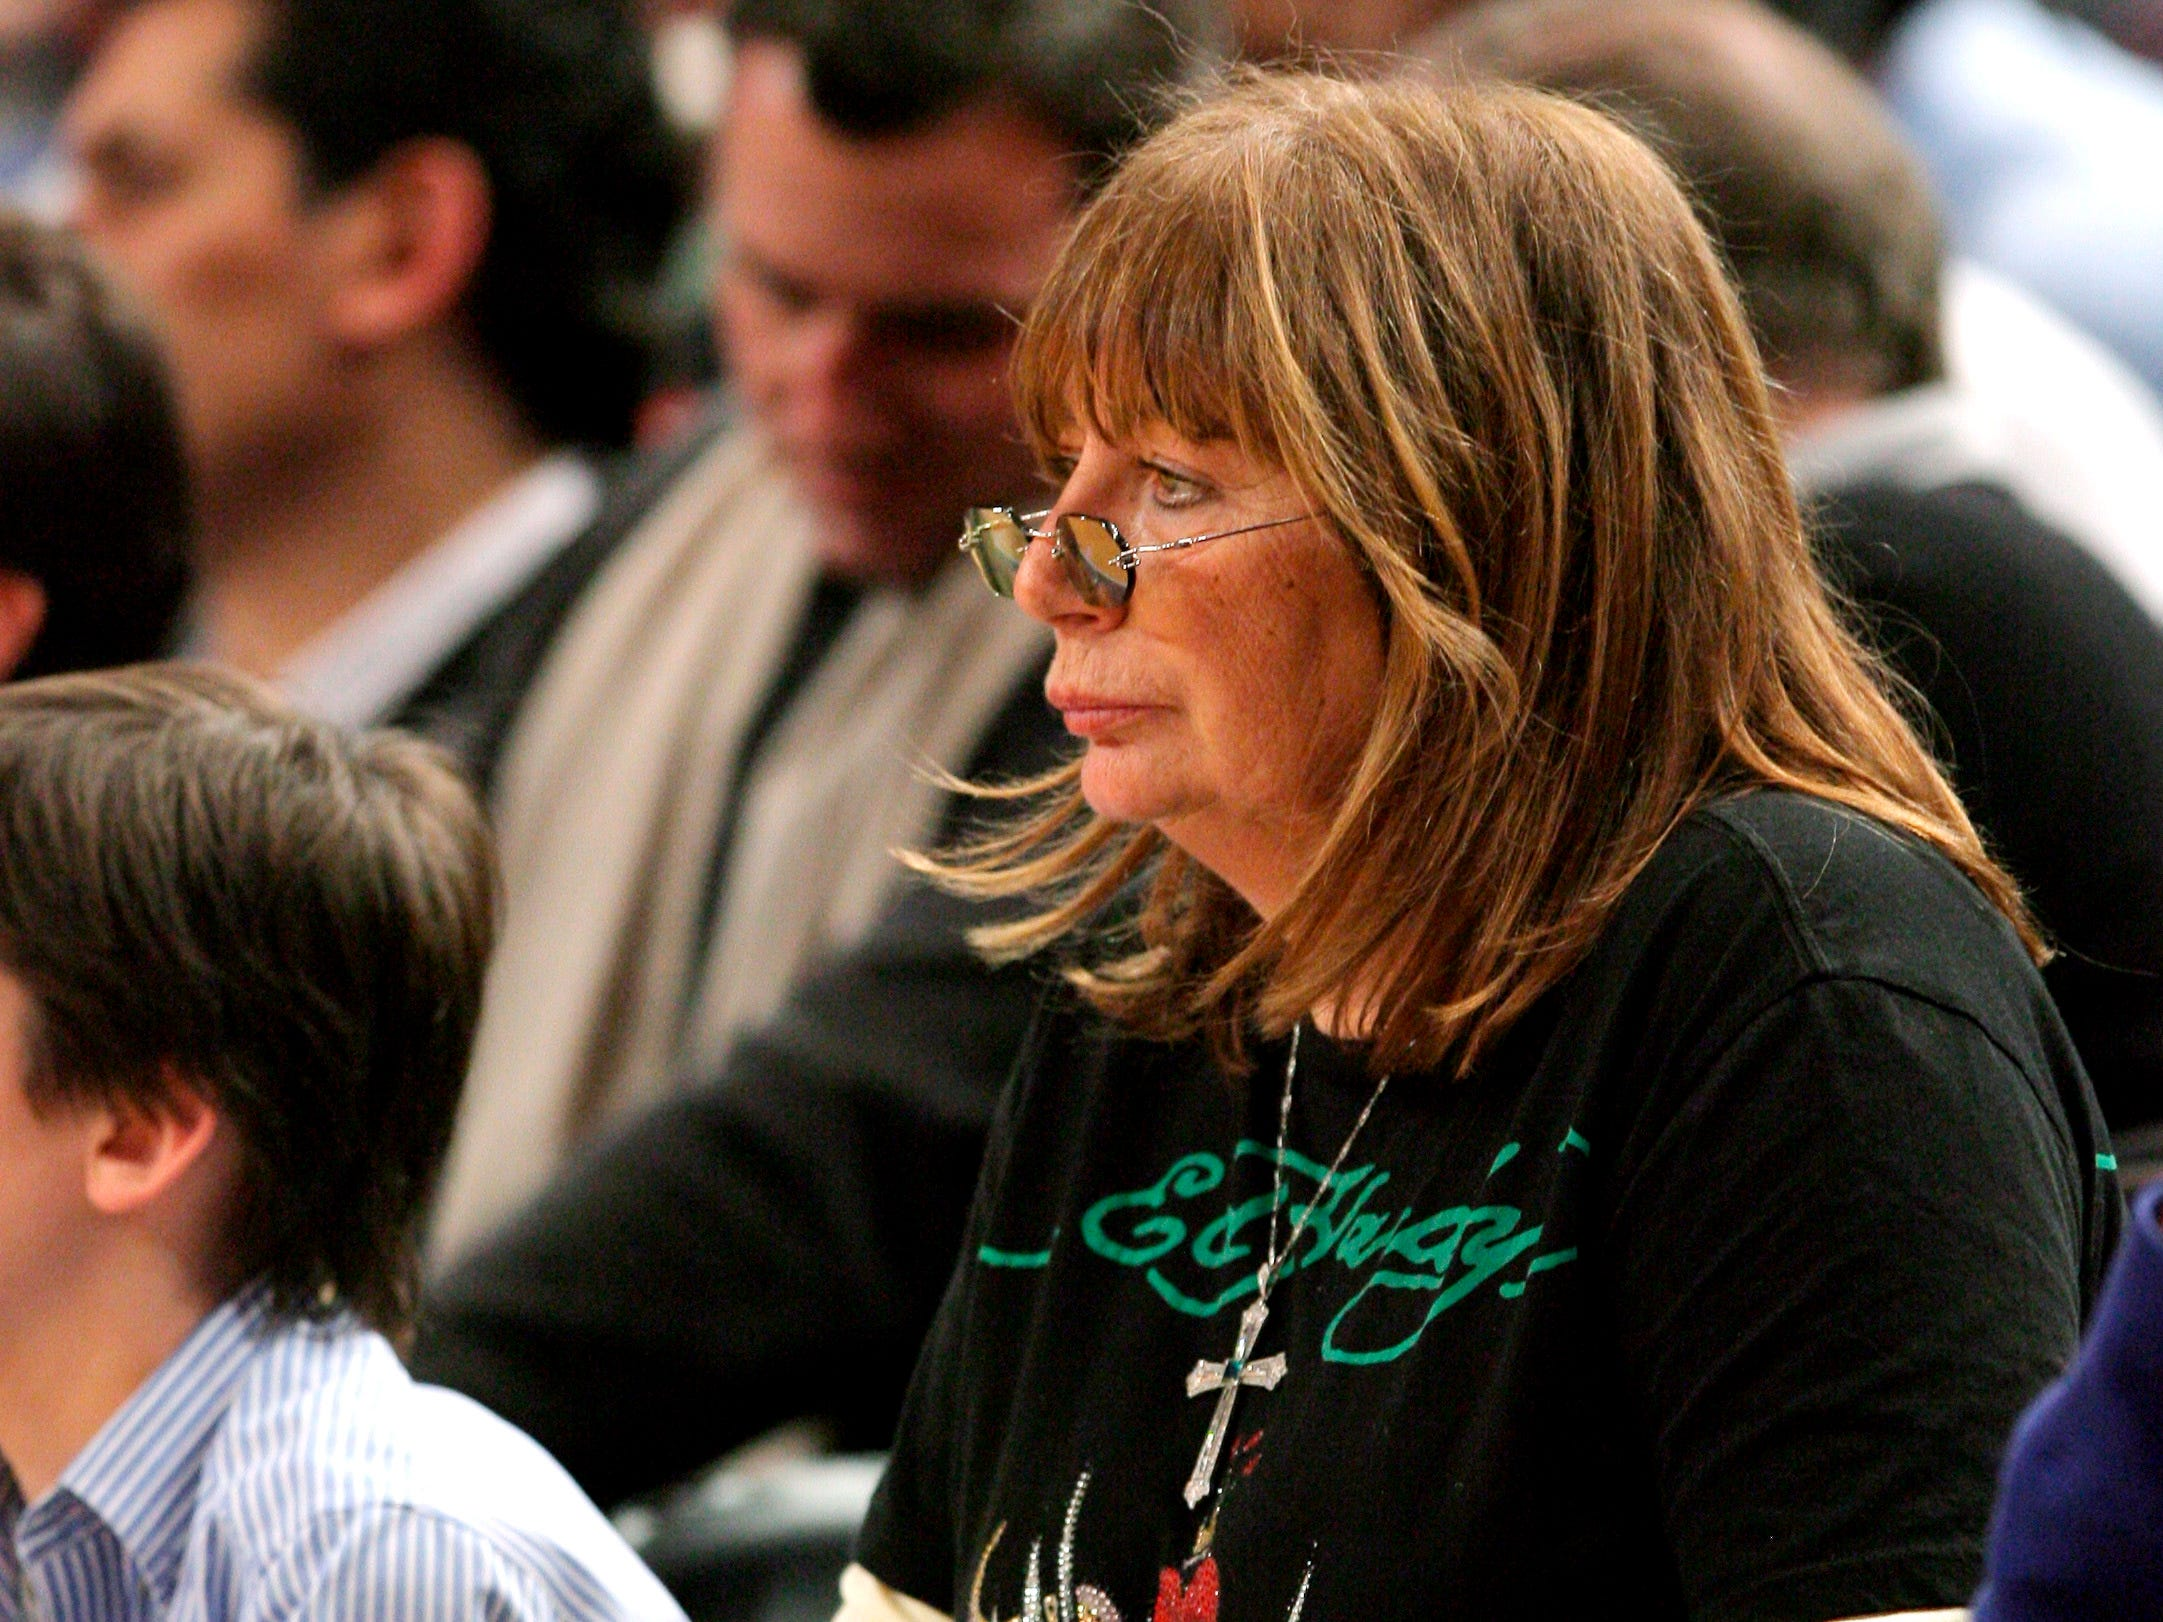 Penny Marshall watches a game between the Cleveland Cavaliers and the New York Knicks at Madison Square Garden in New York in December 2007.